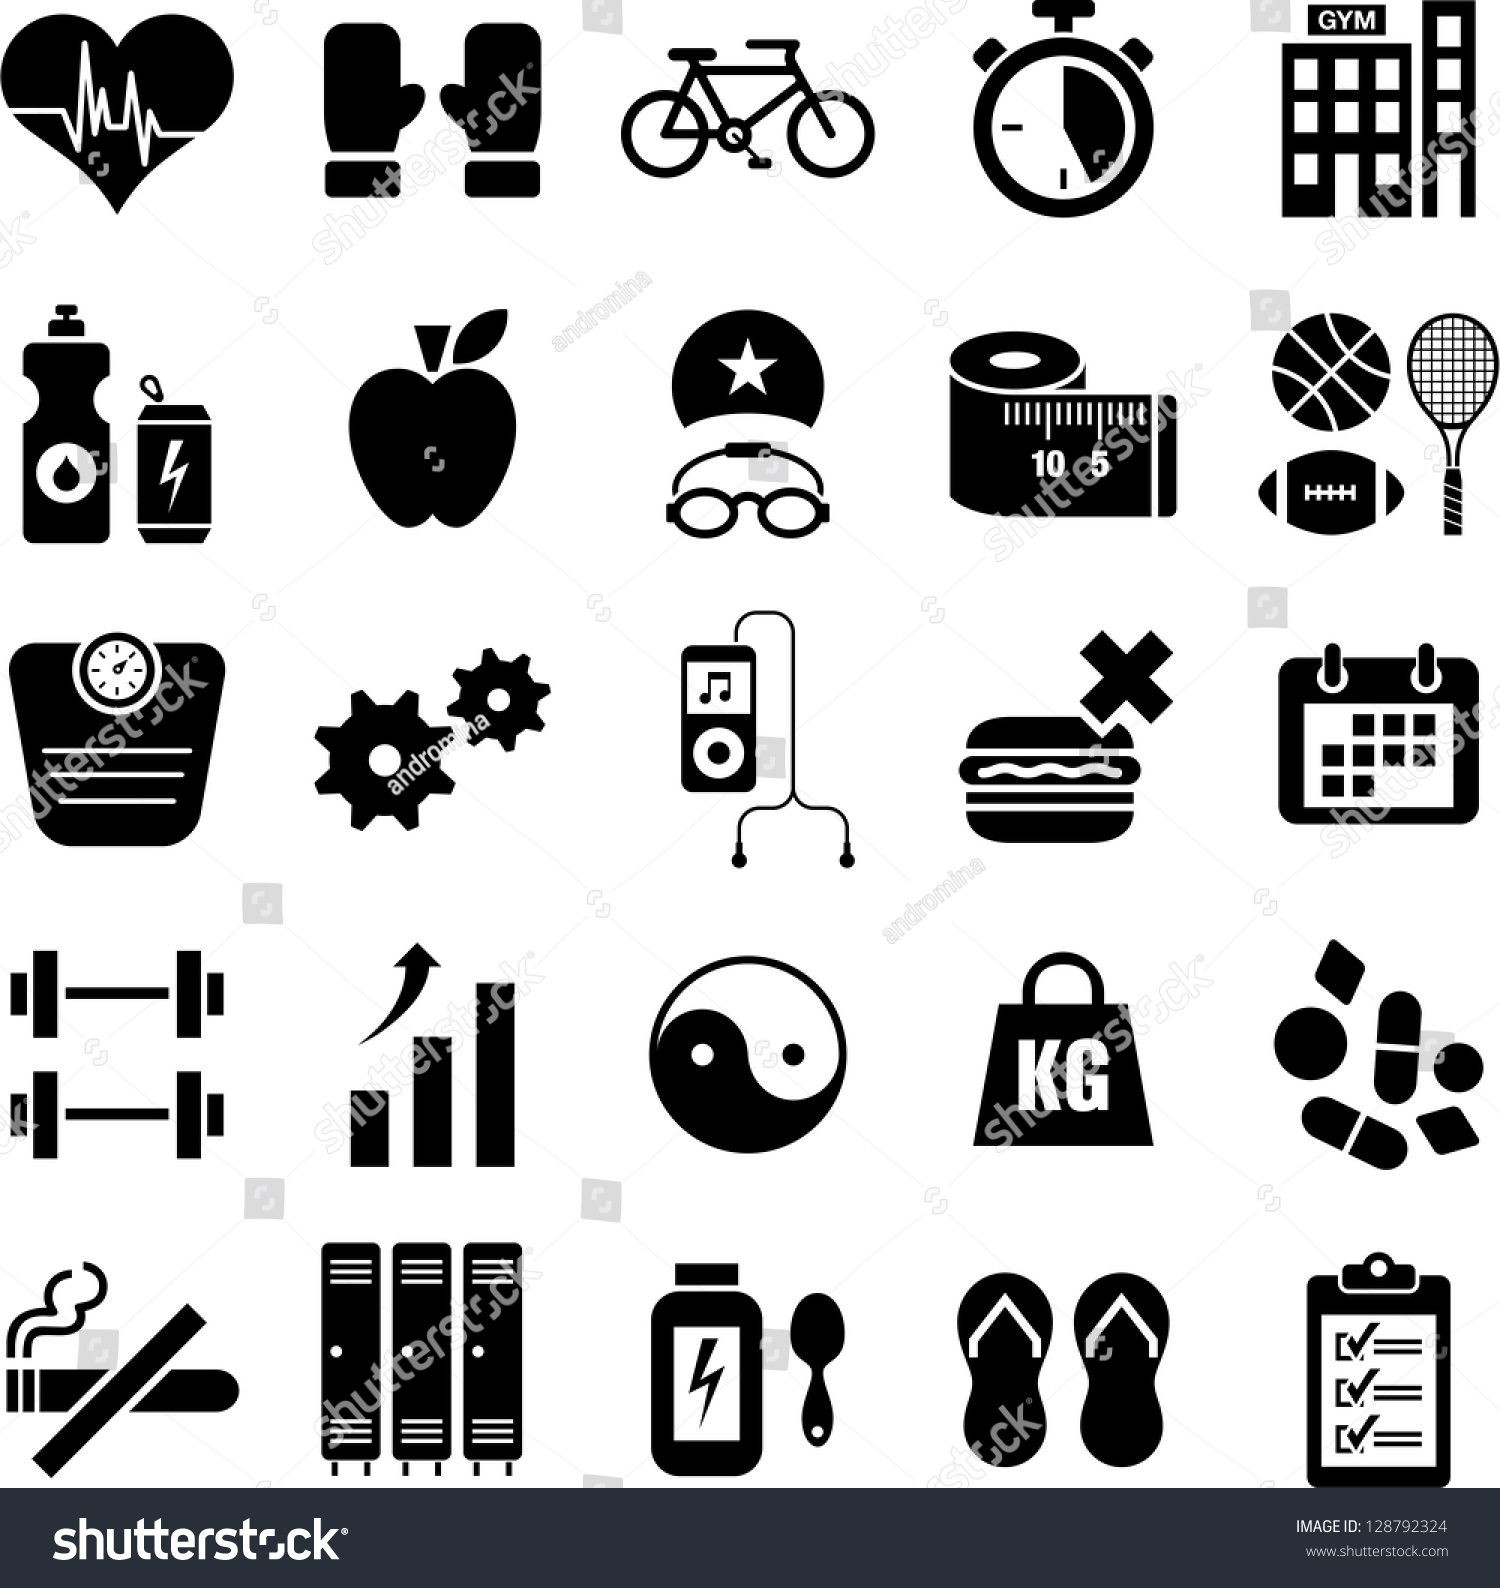 Wellness icon  Health Wellness Icons Stock Vector 128792324 - Shutterstock